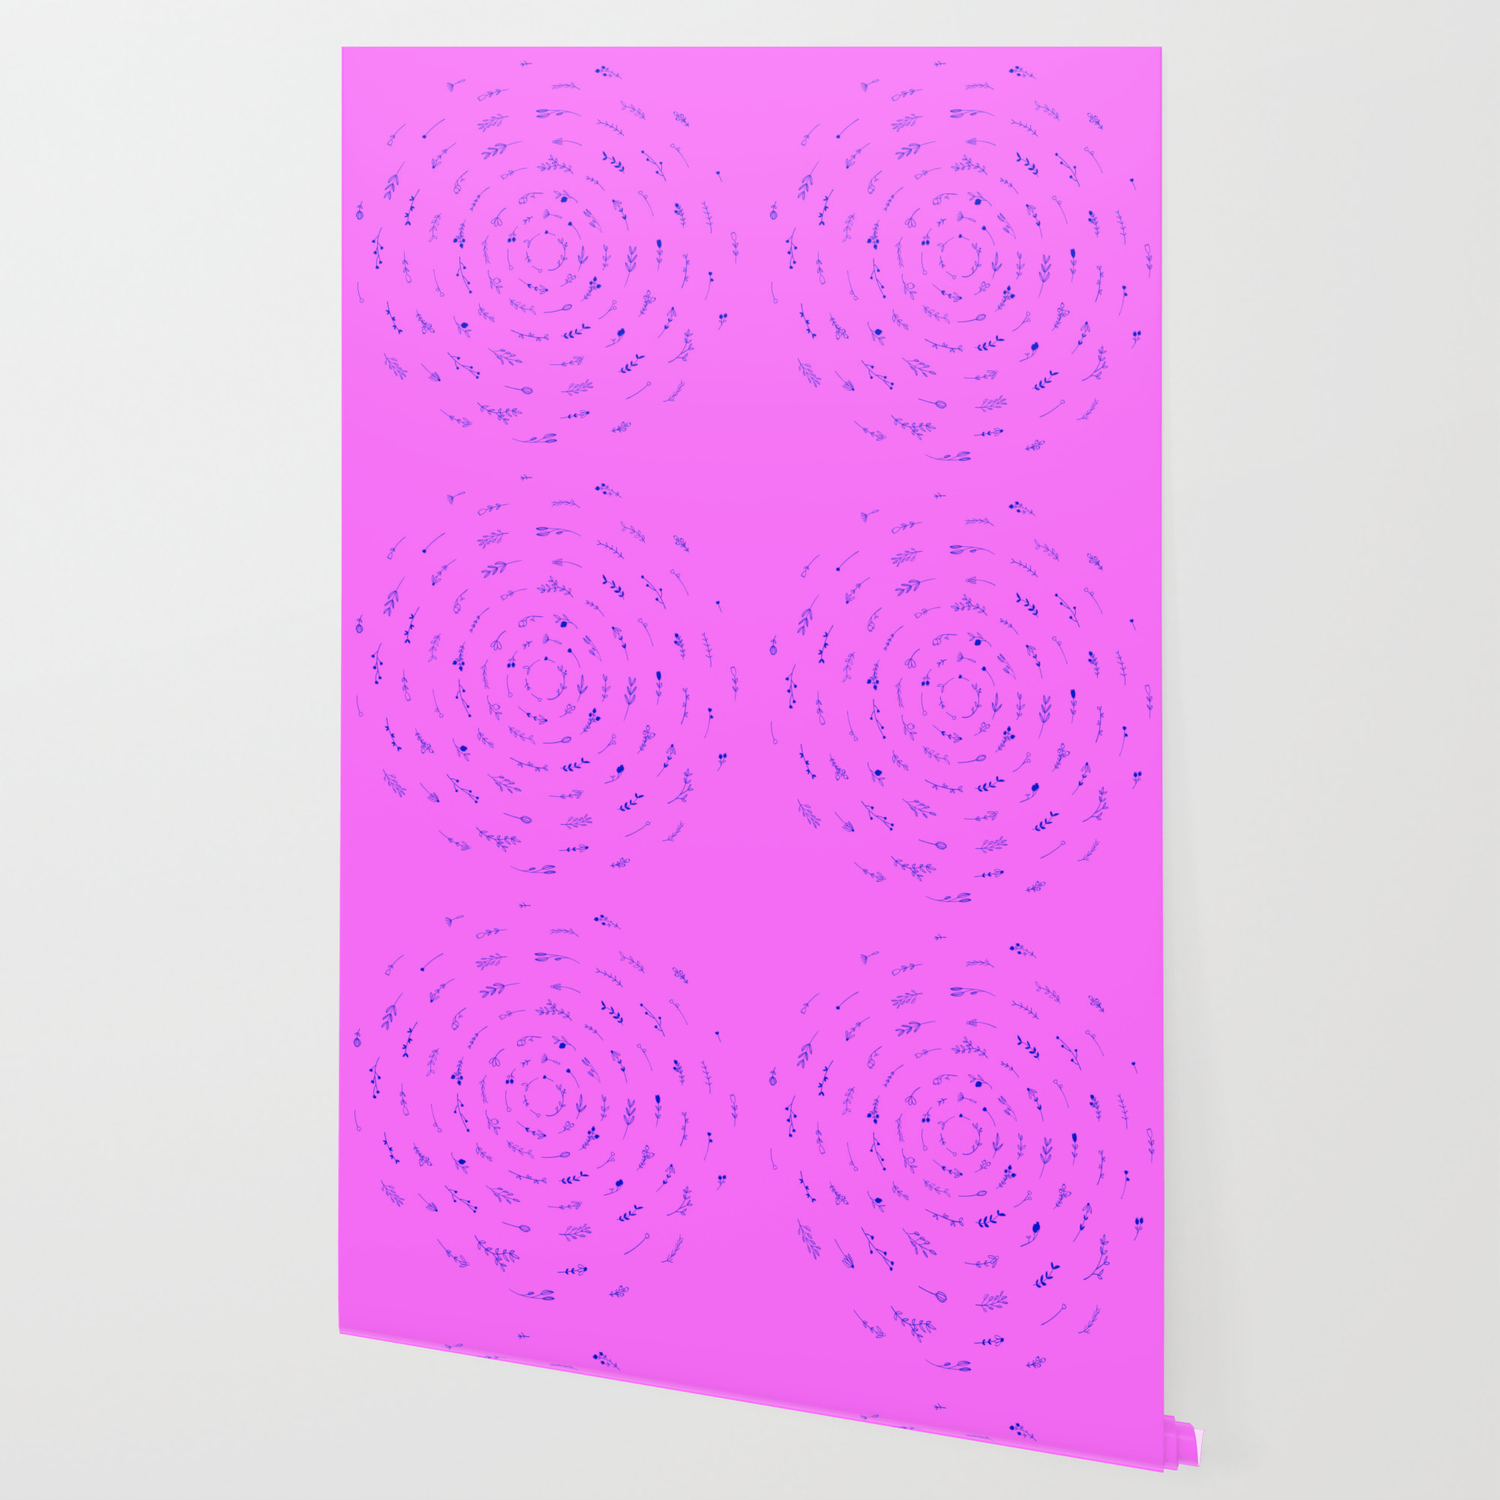 Minimalist Spring Floral Cyclone Blue On Pink Wallpaper